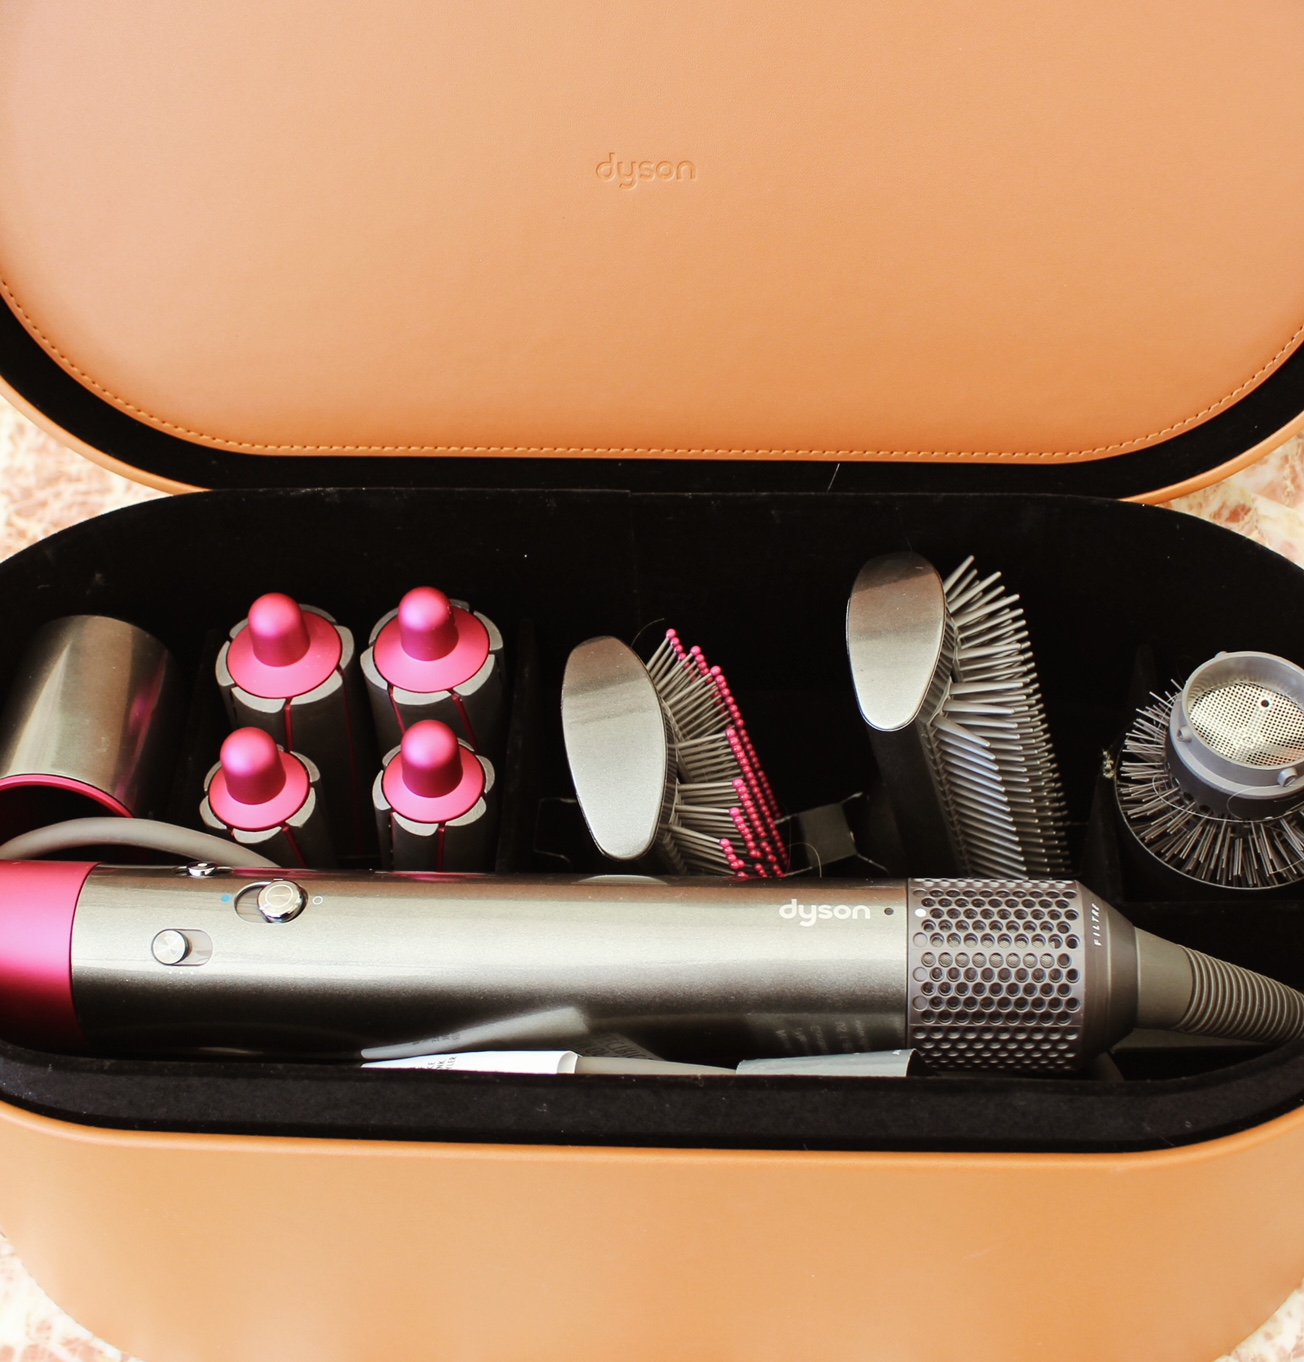 dyson hair styling fashion lifestyle beauty